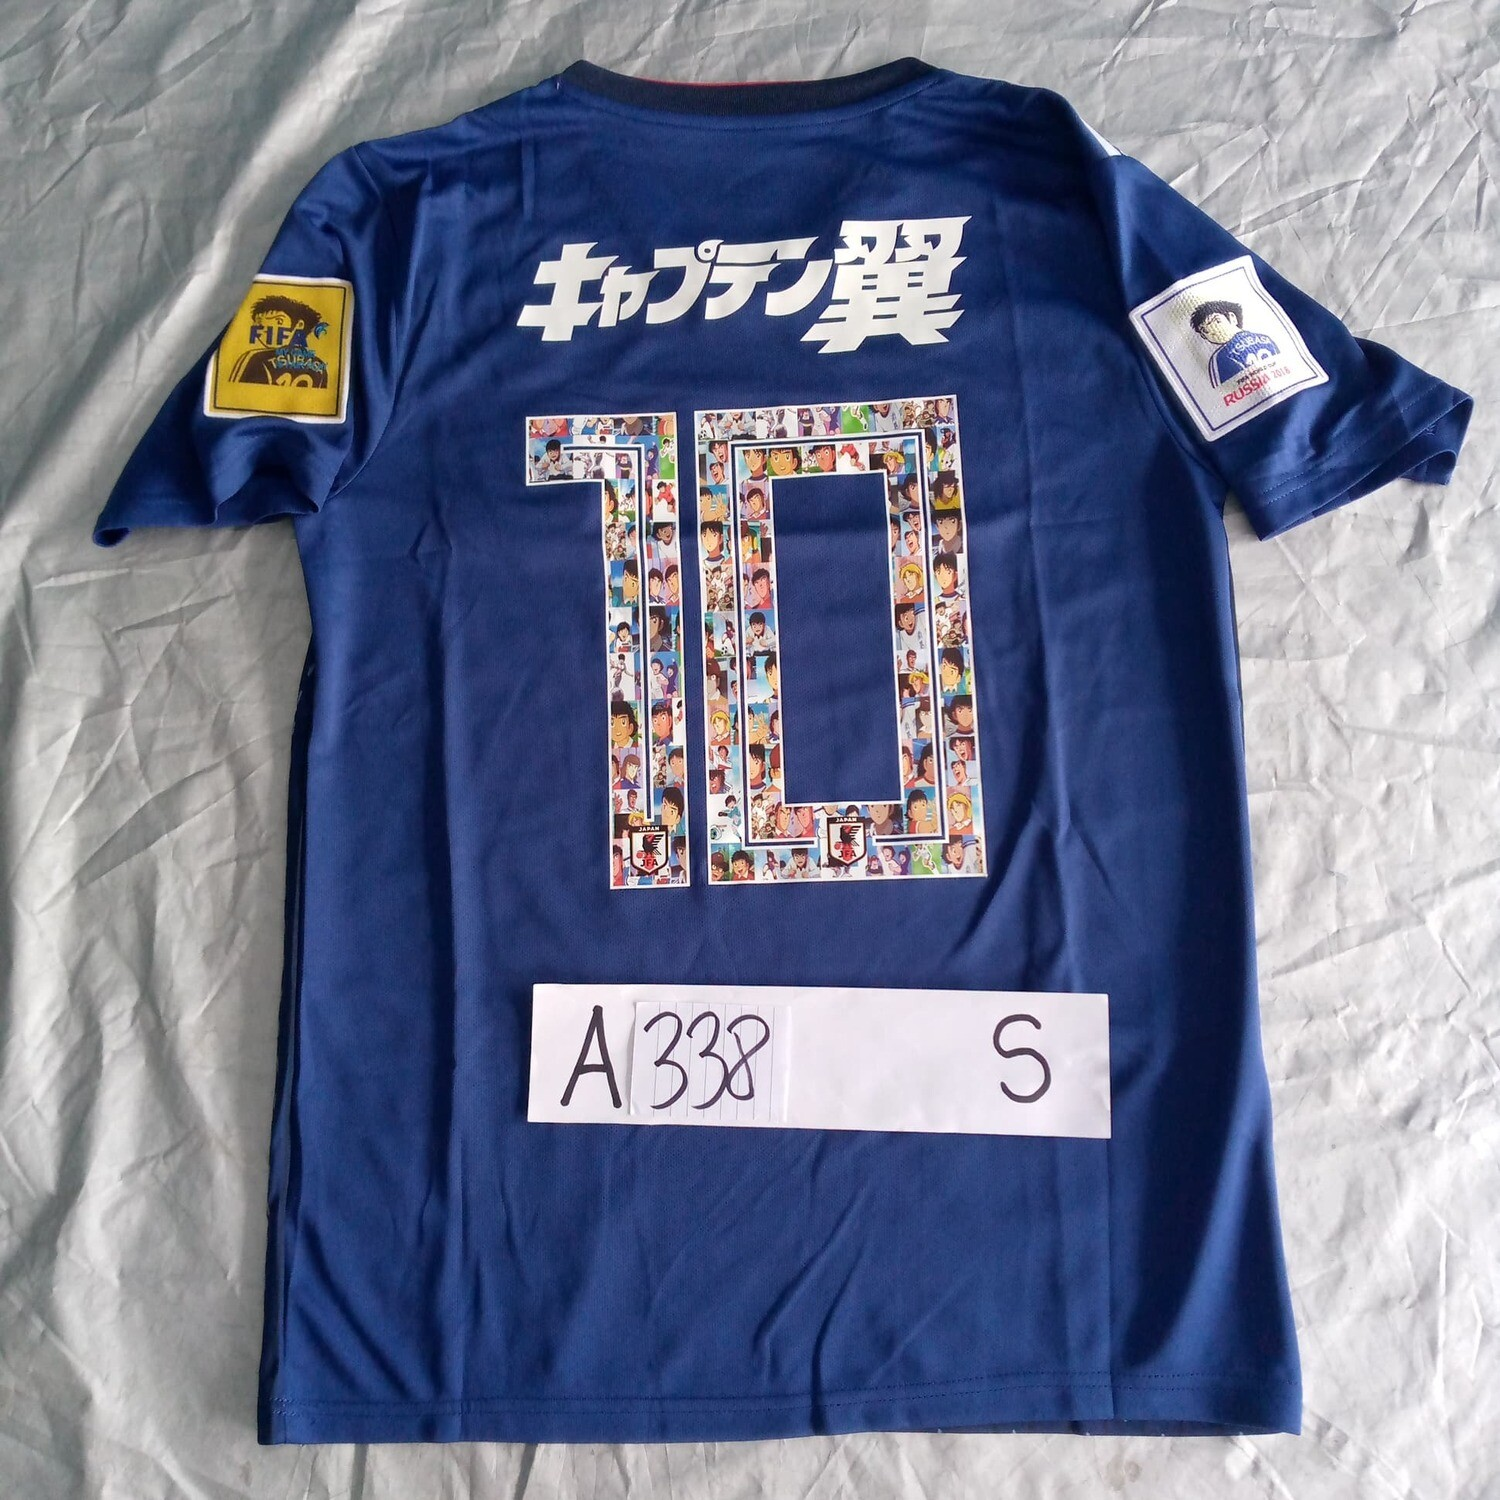 A338 MAGLIA GIAPPONE JAPAN CARTOON HOLLY AND BENJY MAGLIA CASA JERSEY HOME TAGLIA S SIZE S